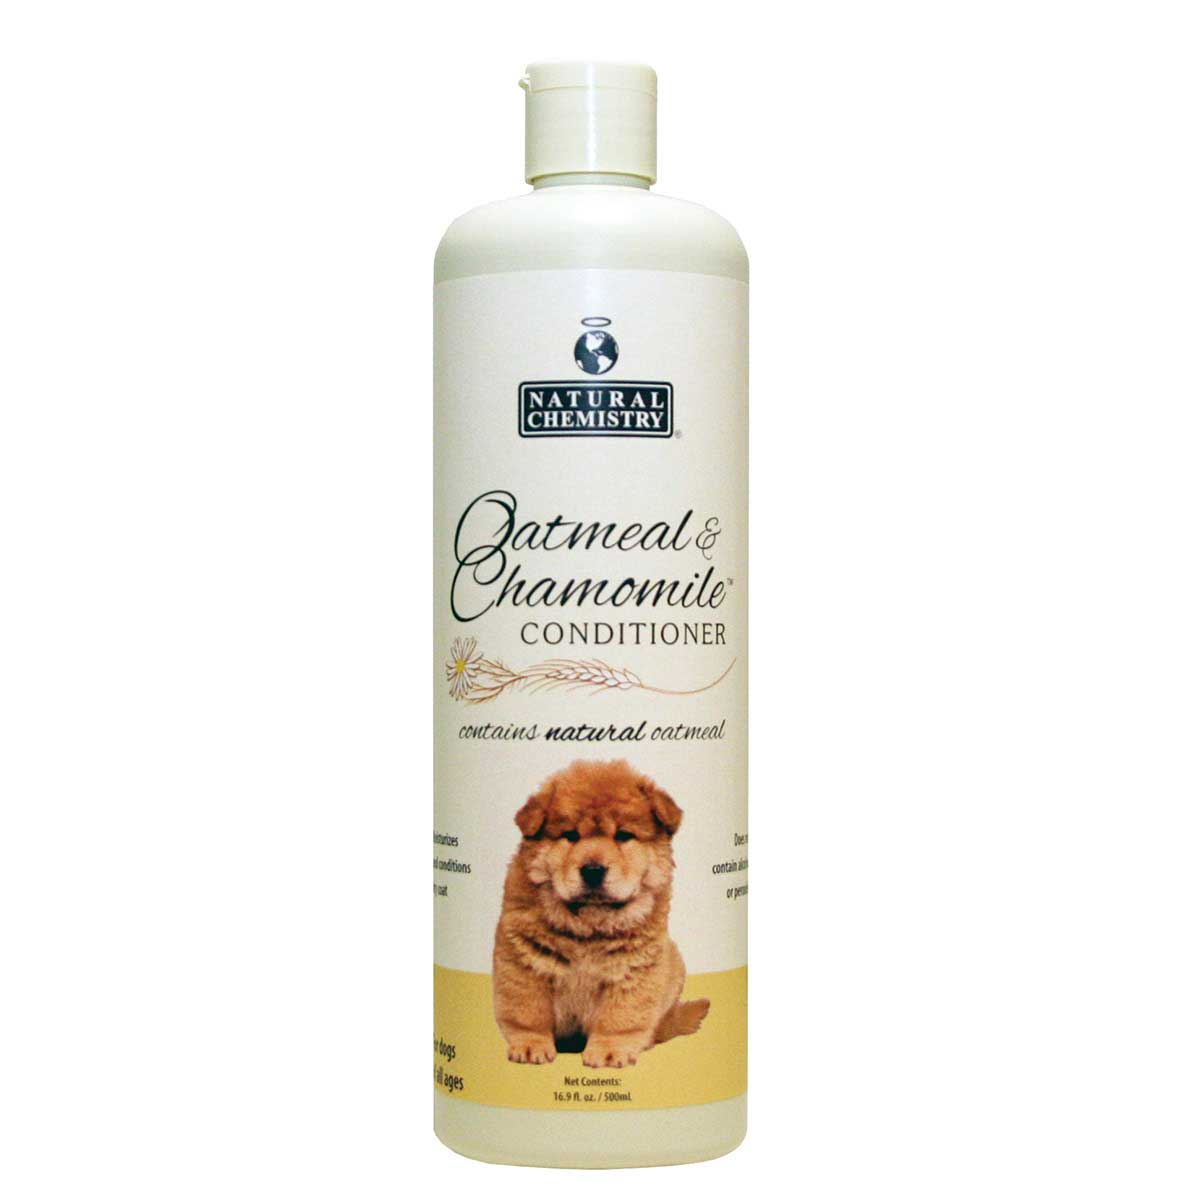 Natural Chemistry Oatmeal & Chamomile Dog Conditioner 16.9 oz